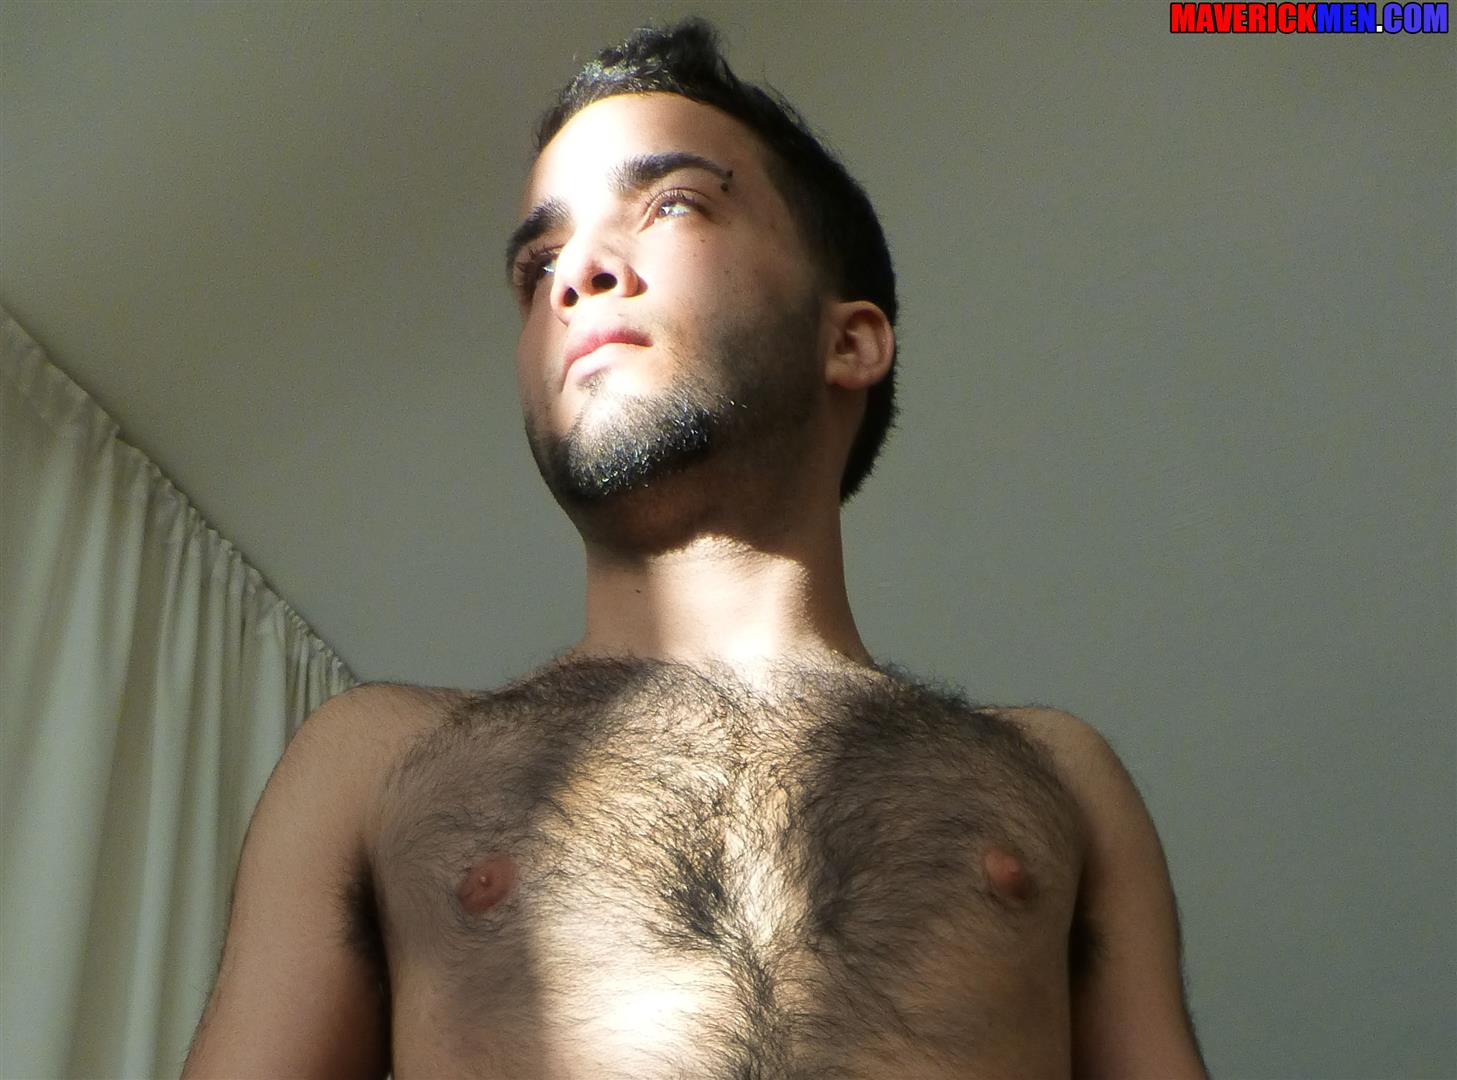 Maverick-Men-Little-Wolf-Hairy-Guy-With-Big-Uncut-Cock-Getting-Barebacked-By-Two-Daddies-Gay-Porn-10 Hairy Ass Young Guy Getting Barebacked By The Maverick Men